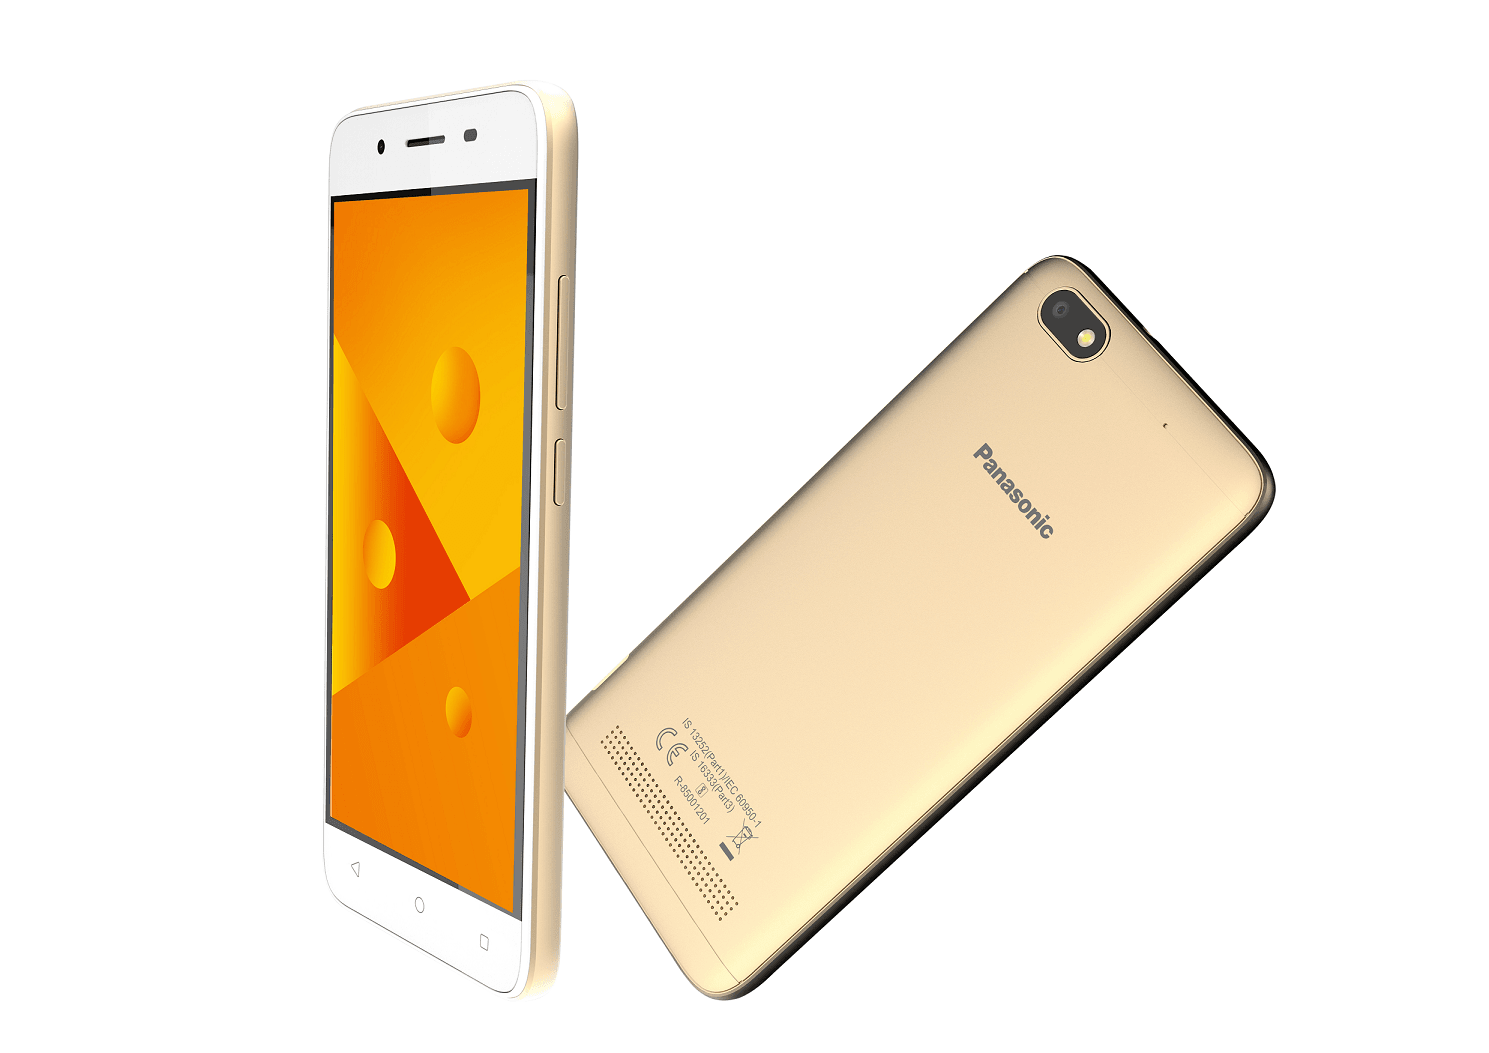 Panasonic launches P99 with 5-inch HD screen for INR 7490